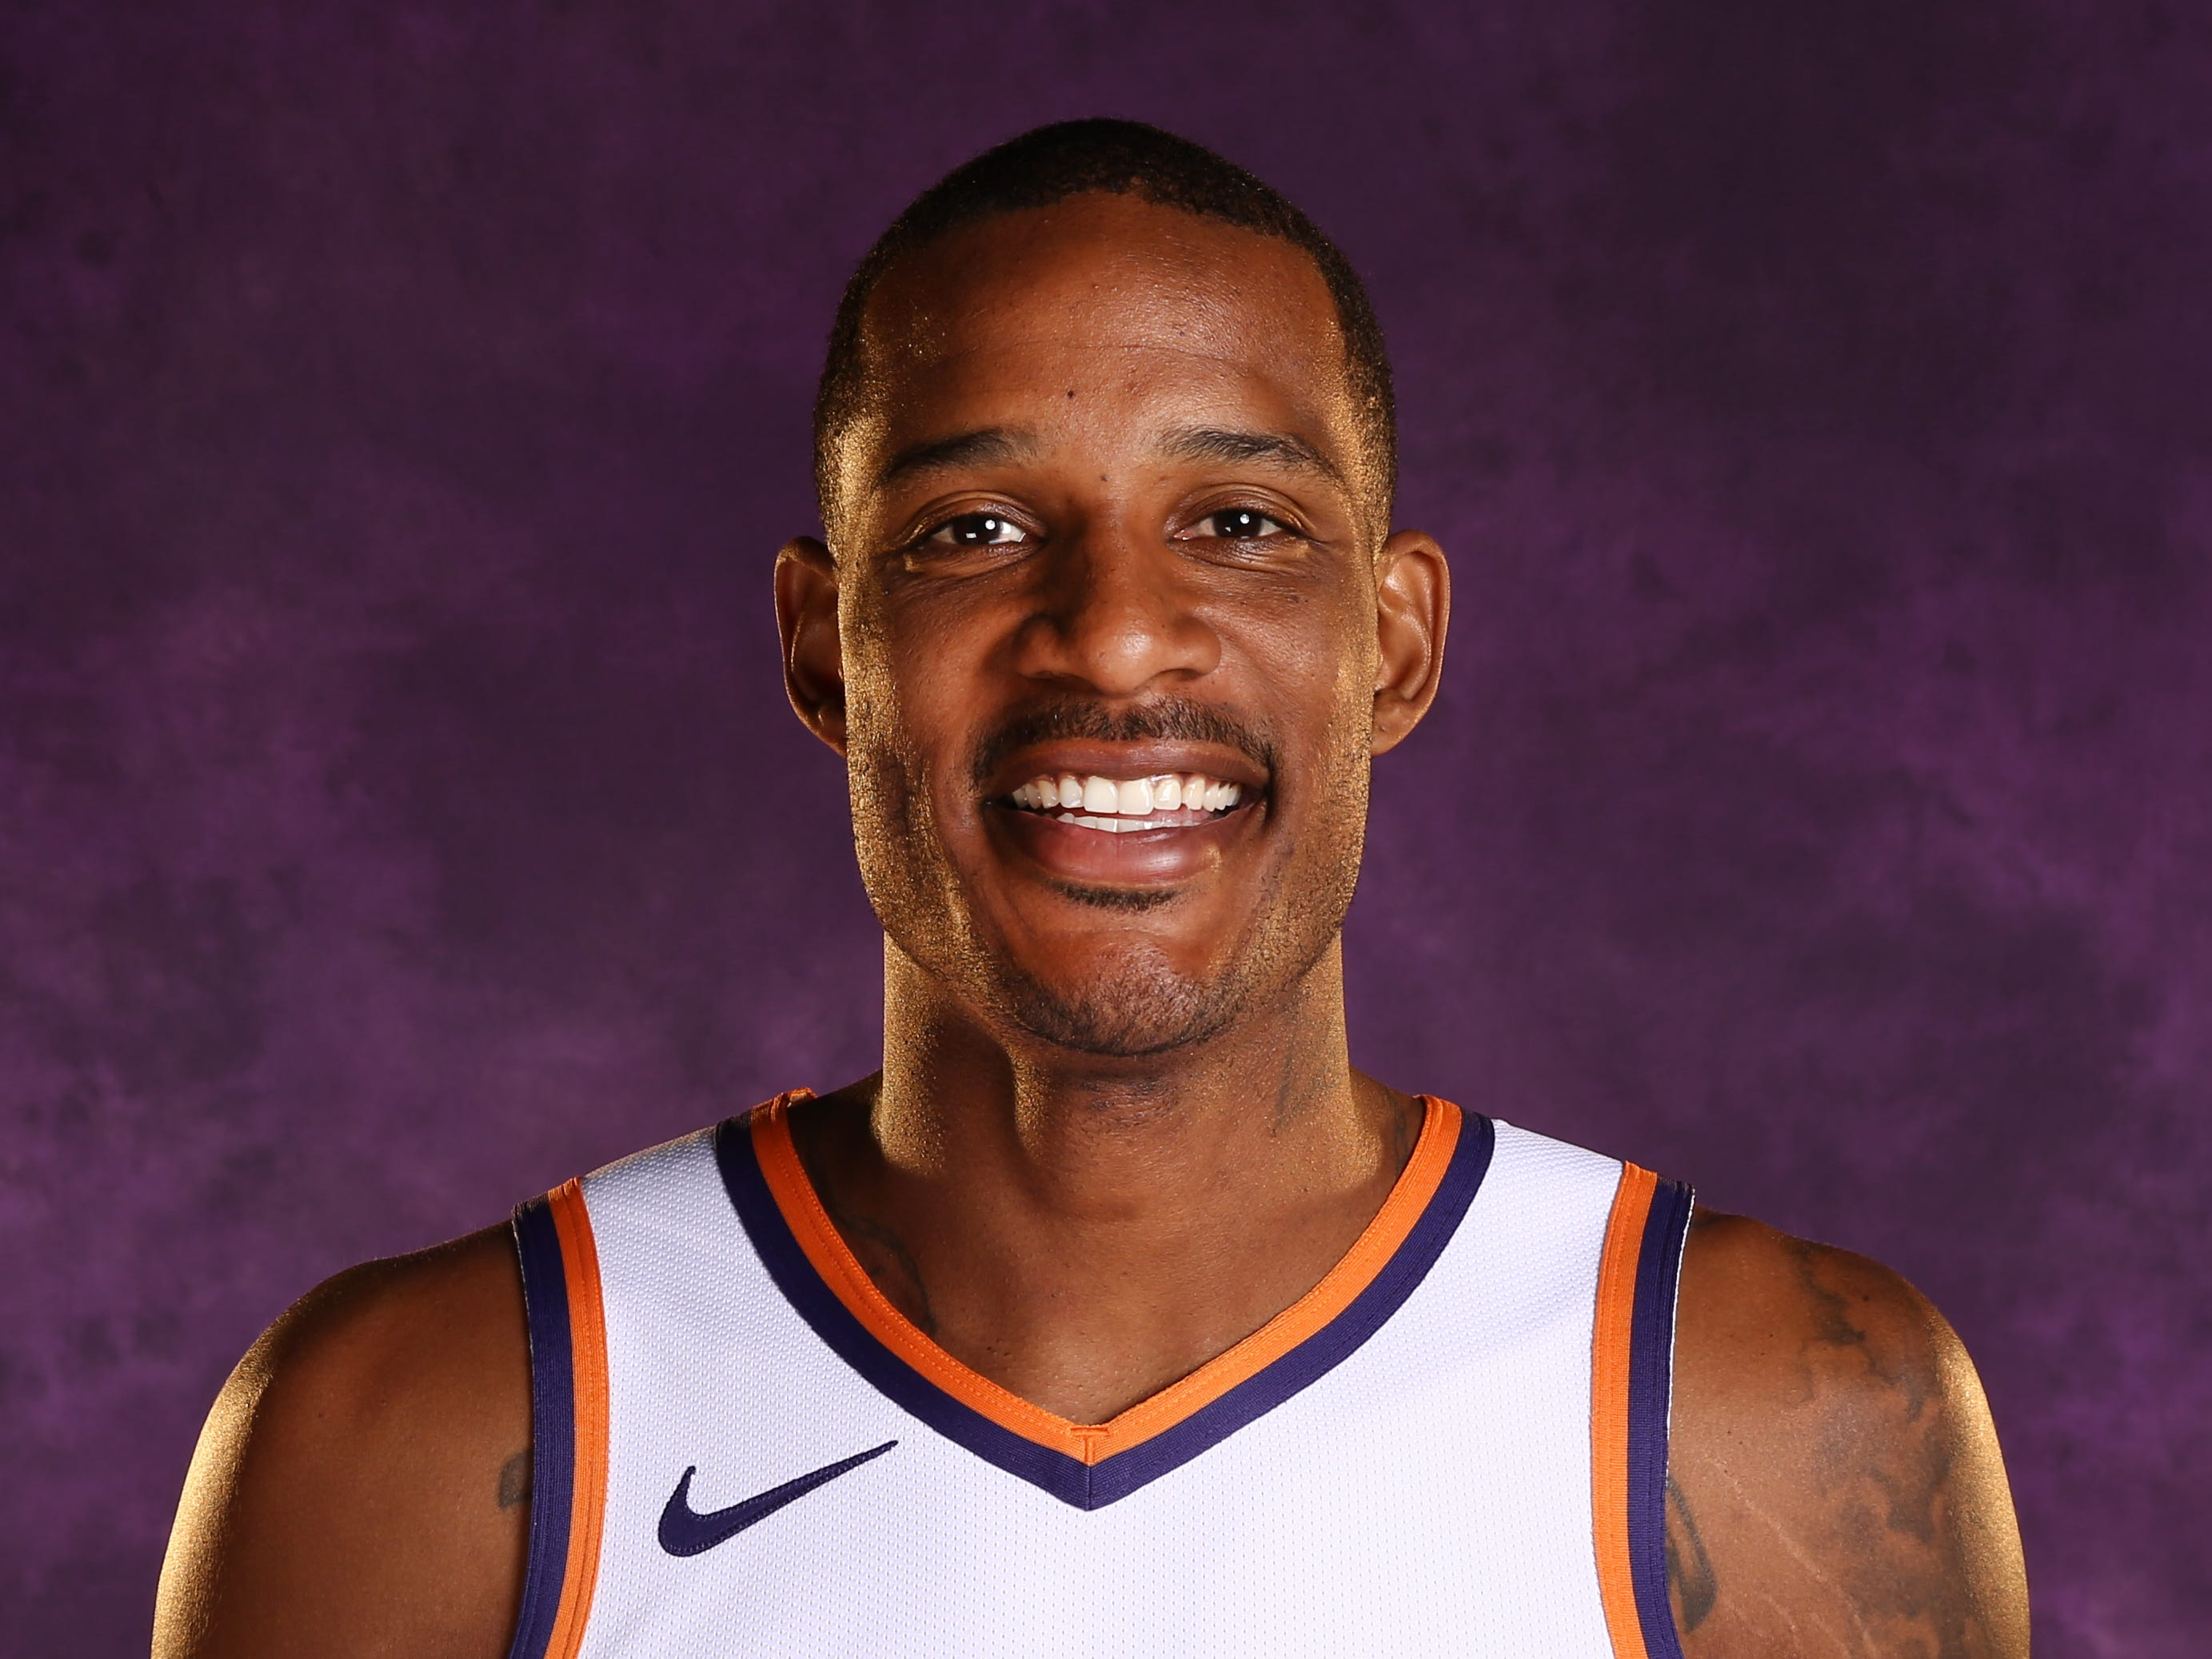 Phoenix Suns forward Trevor Ariza during media day at Talking Stick Resort Arena on Sep. 24, 2018, in Phoenix, Ariz.